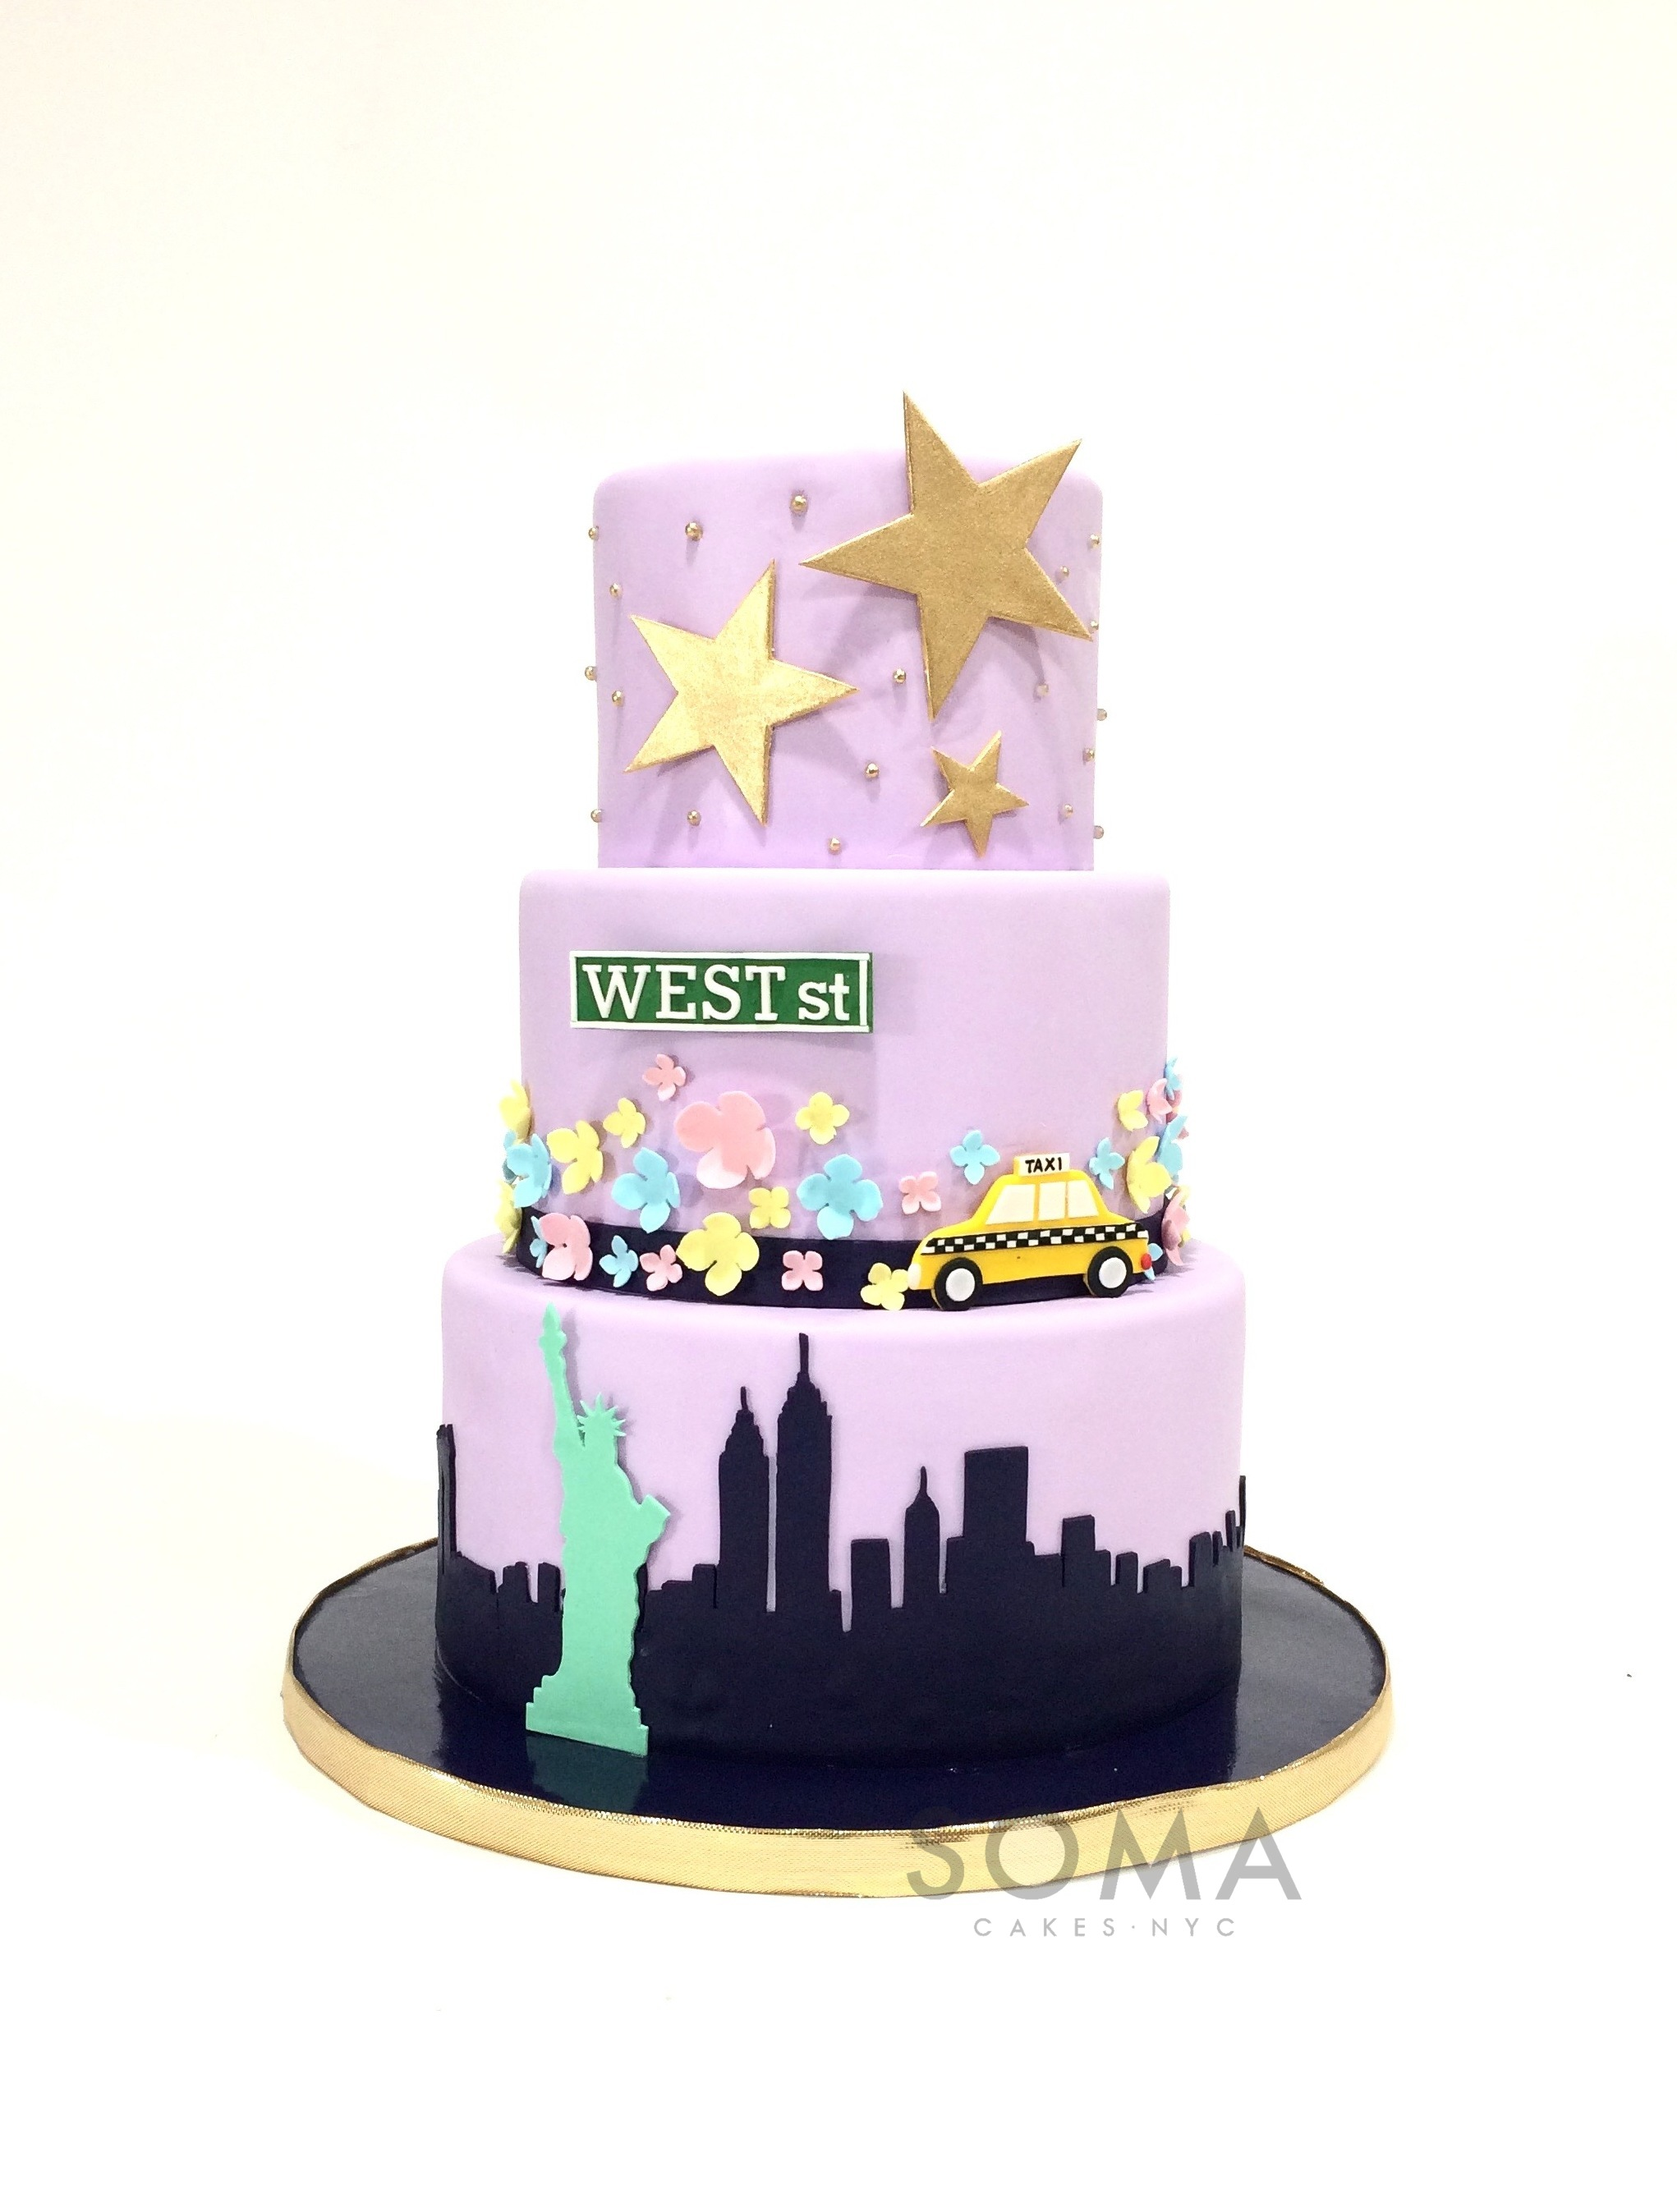 Groovy Soma Cakes Nyc Personalised Birthday Cards Paralily Jamesorg